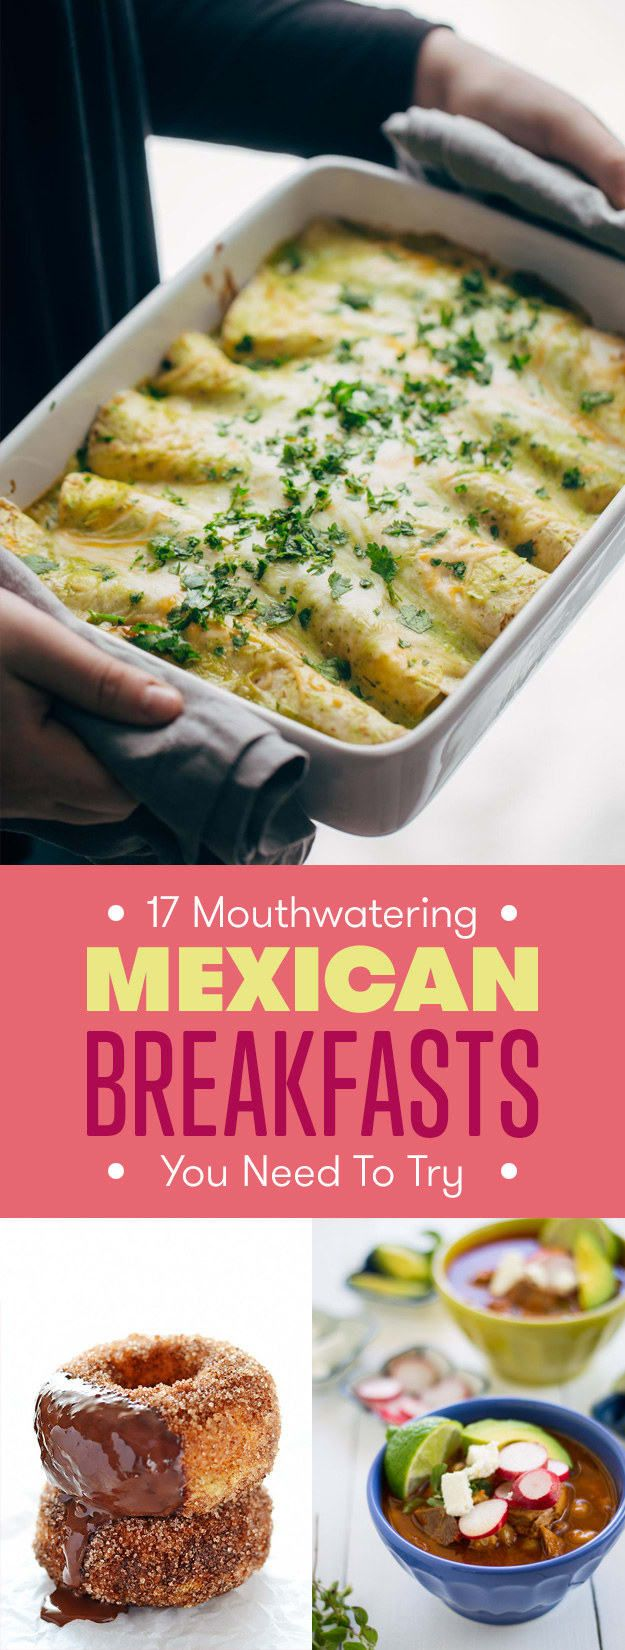 17 Mexican Breakfast Recipes That Will Spice Up Your Morning